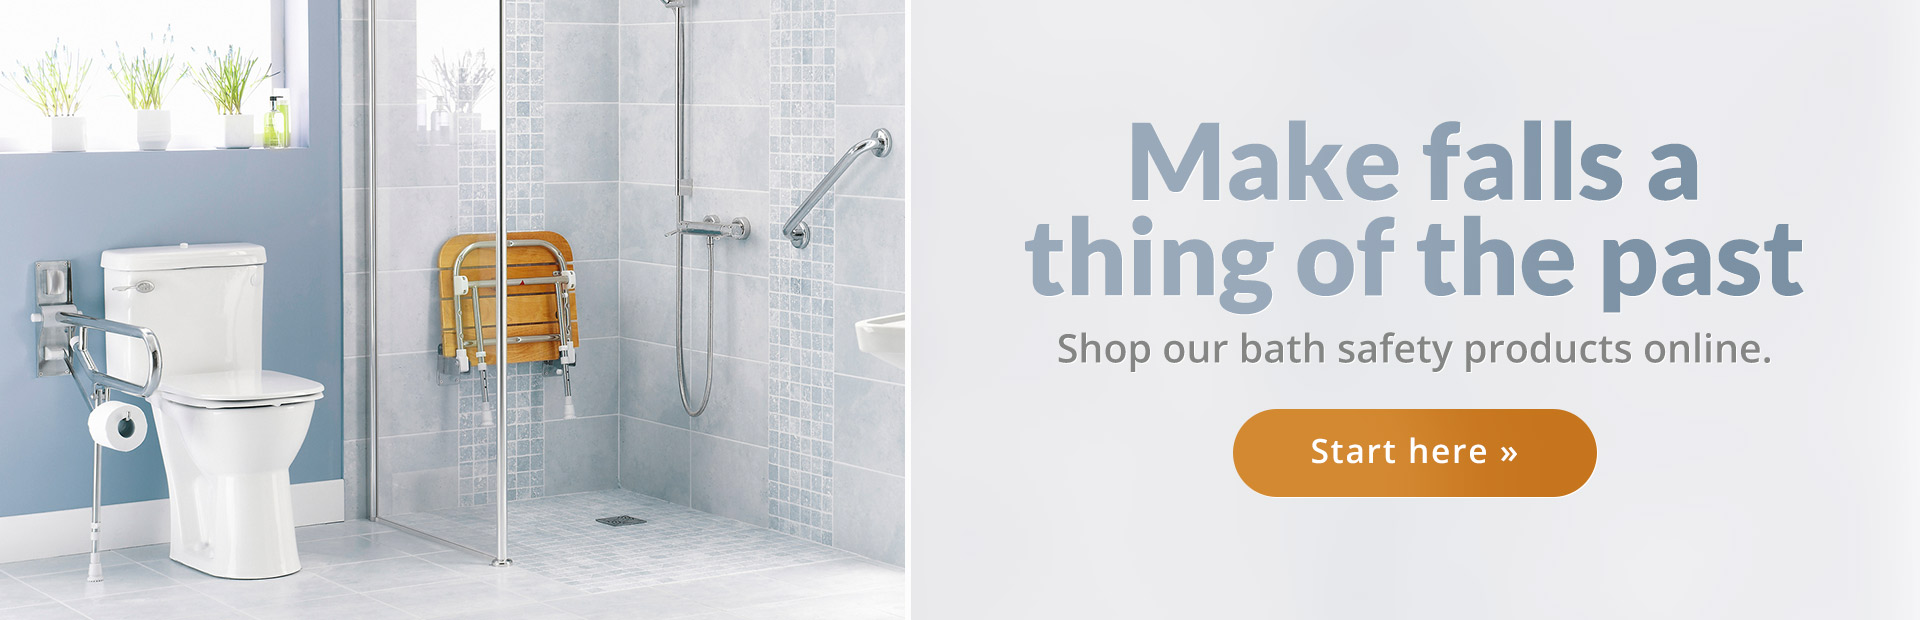 Make falls a thing of the past. Click here to shop our bath safety products online.